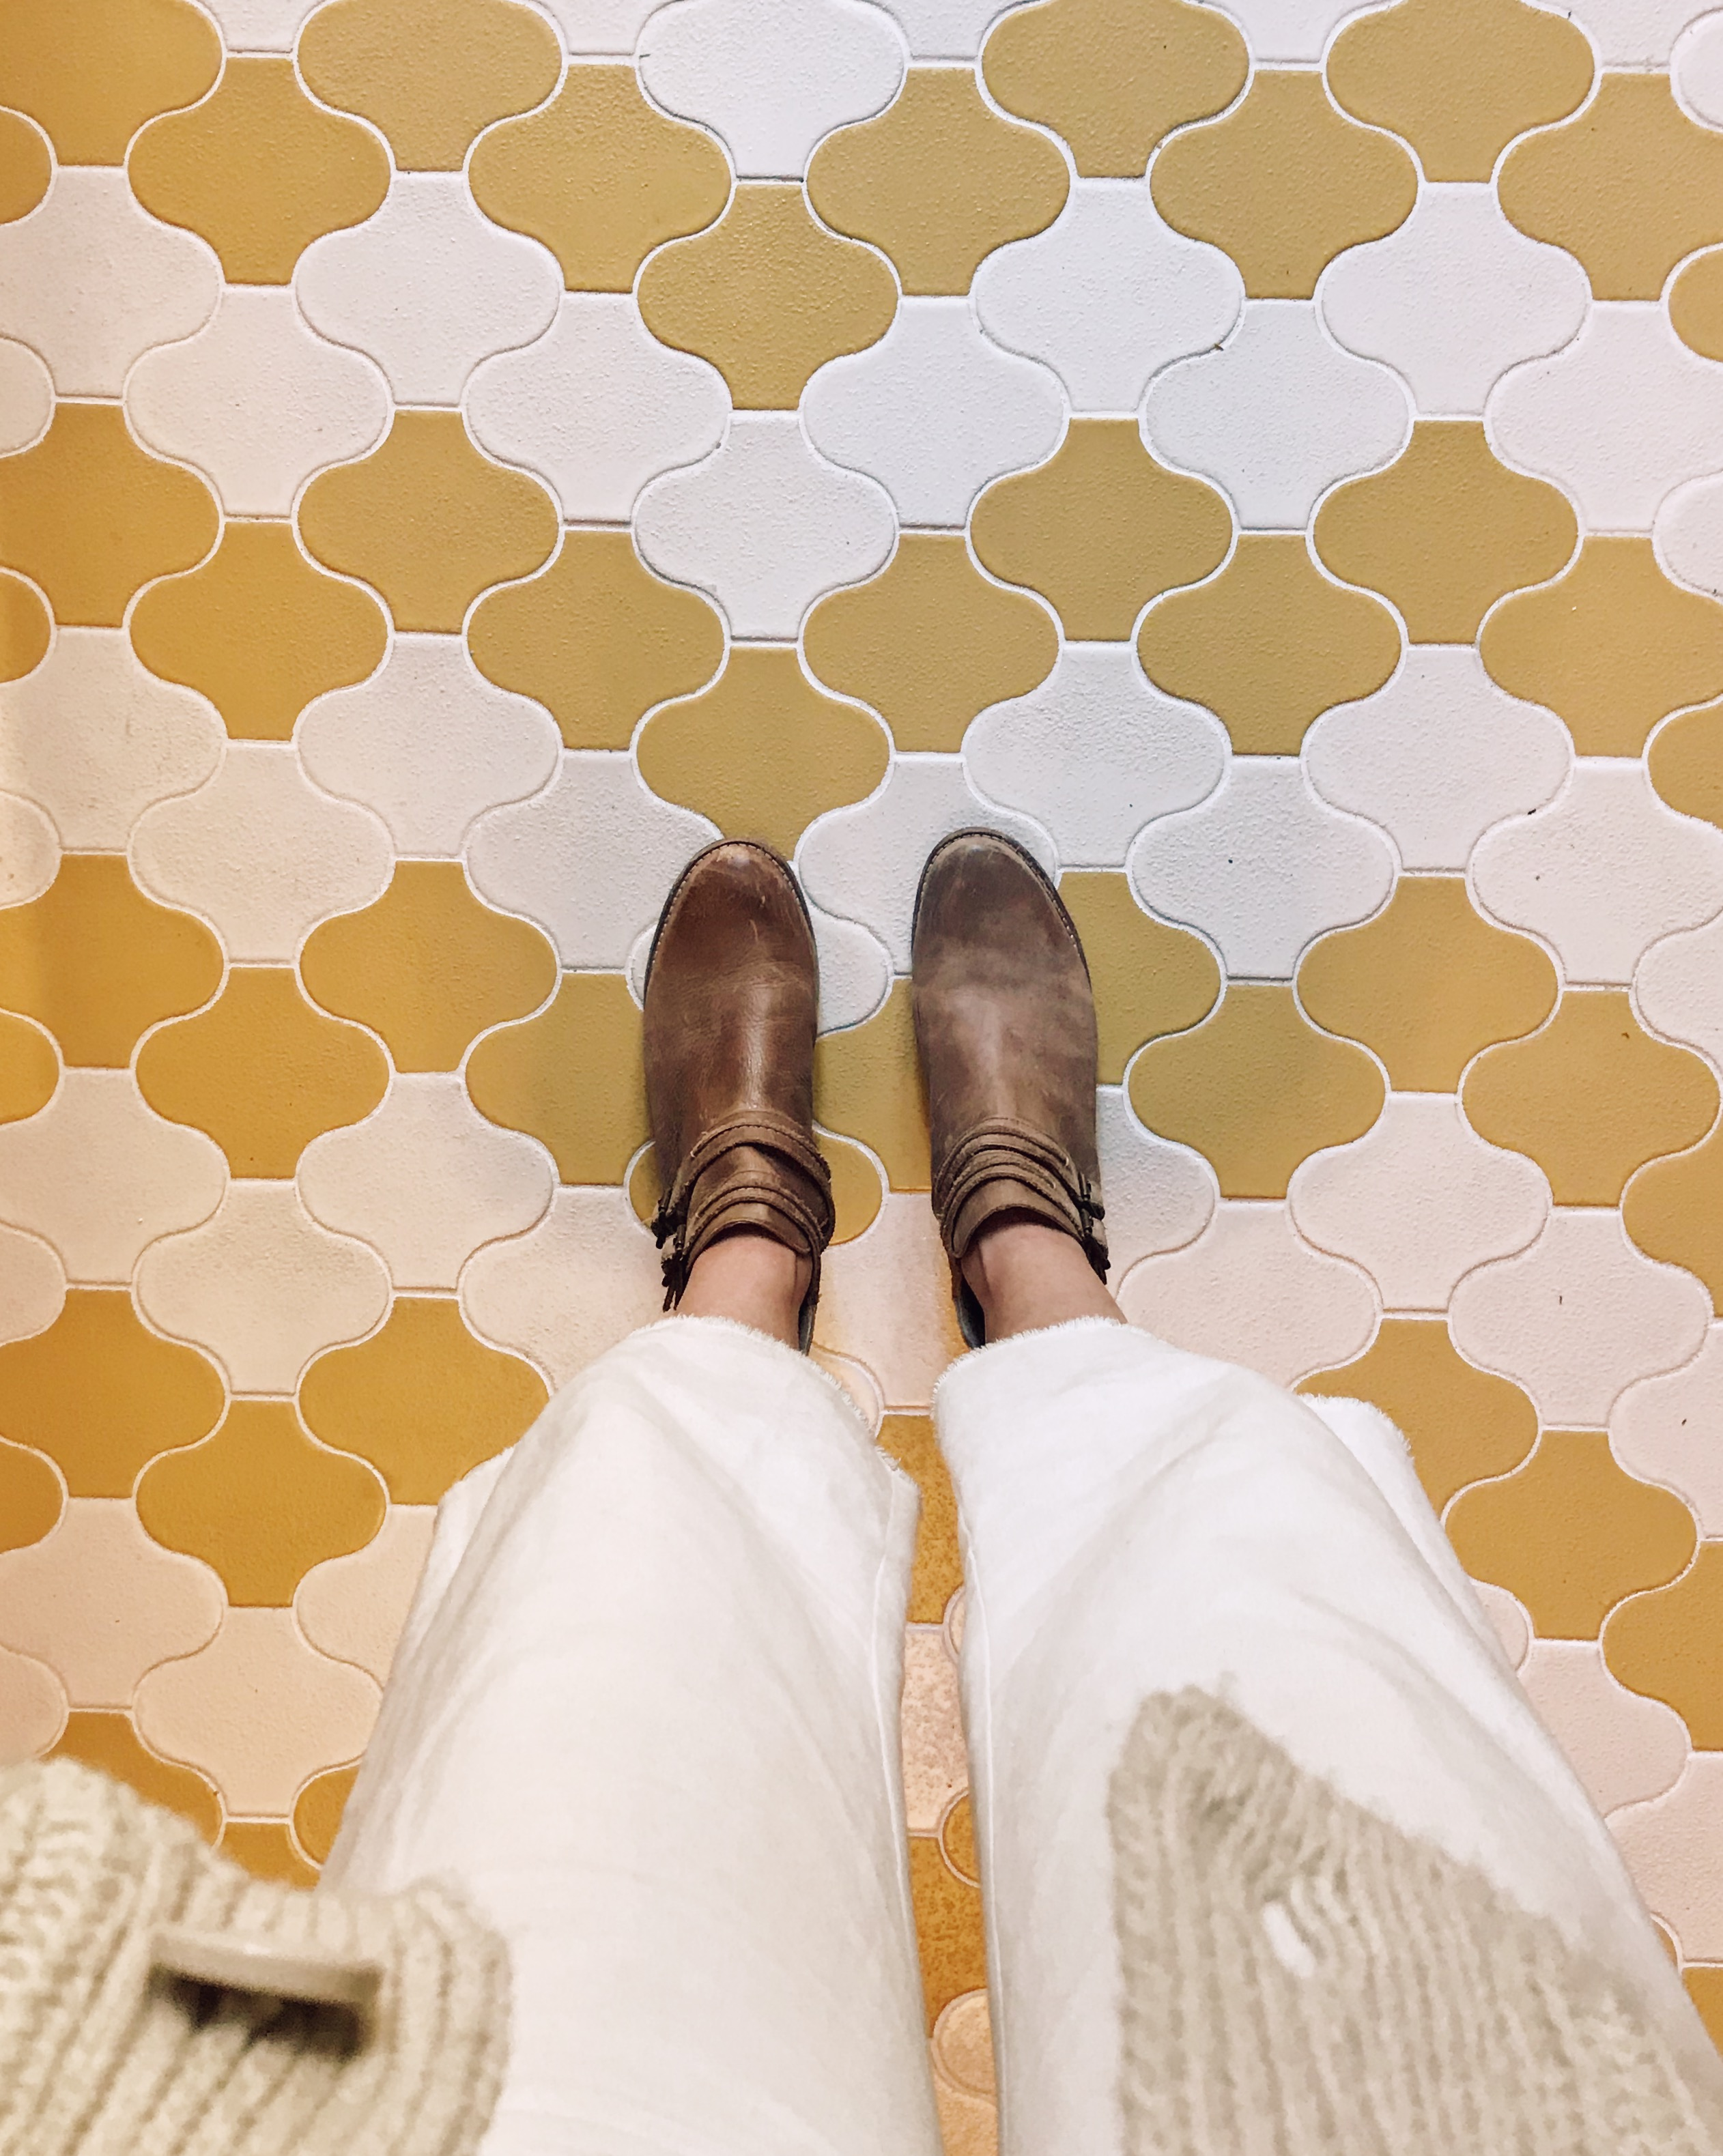 2018_Q1_image_commercial_influencer_Joshua_Tree_House_Assembly_photograher_Margaret_Austin_gym_work_space_entryway_tile_floor_paseo_sunflower_tusk_abrasive_with_feet.jpg?mtime=20180610102918#asset:265482